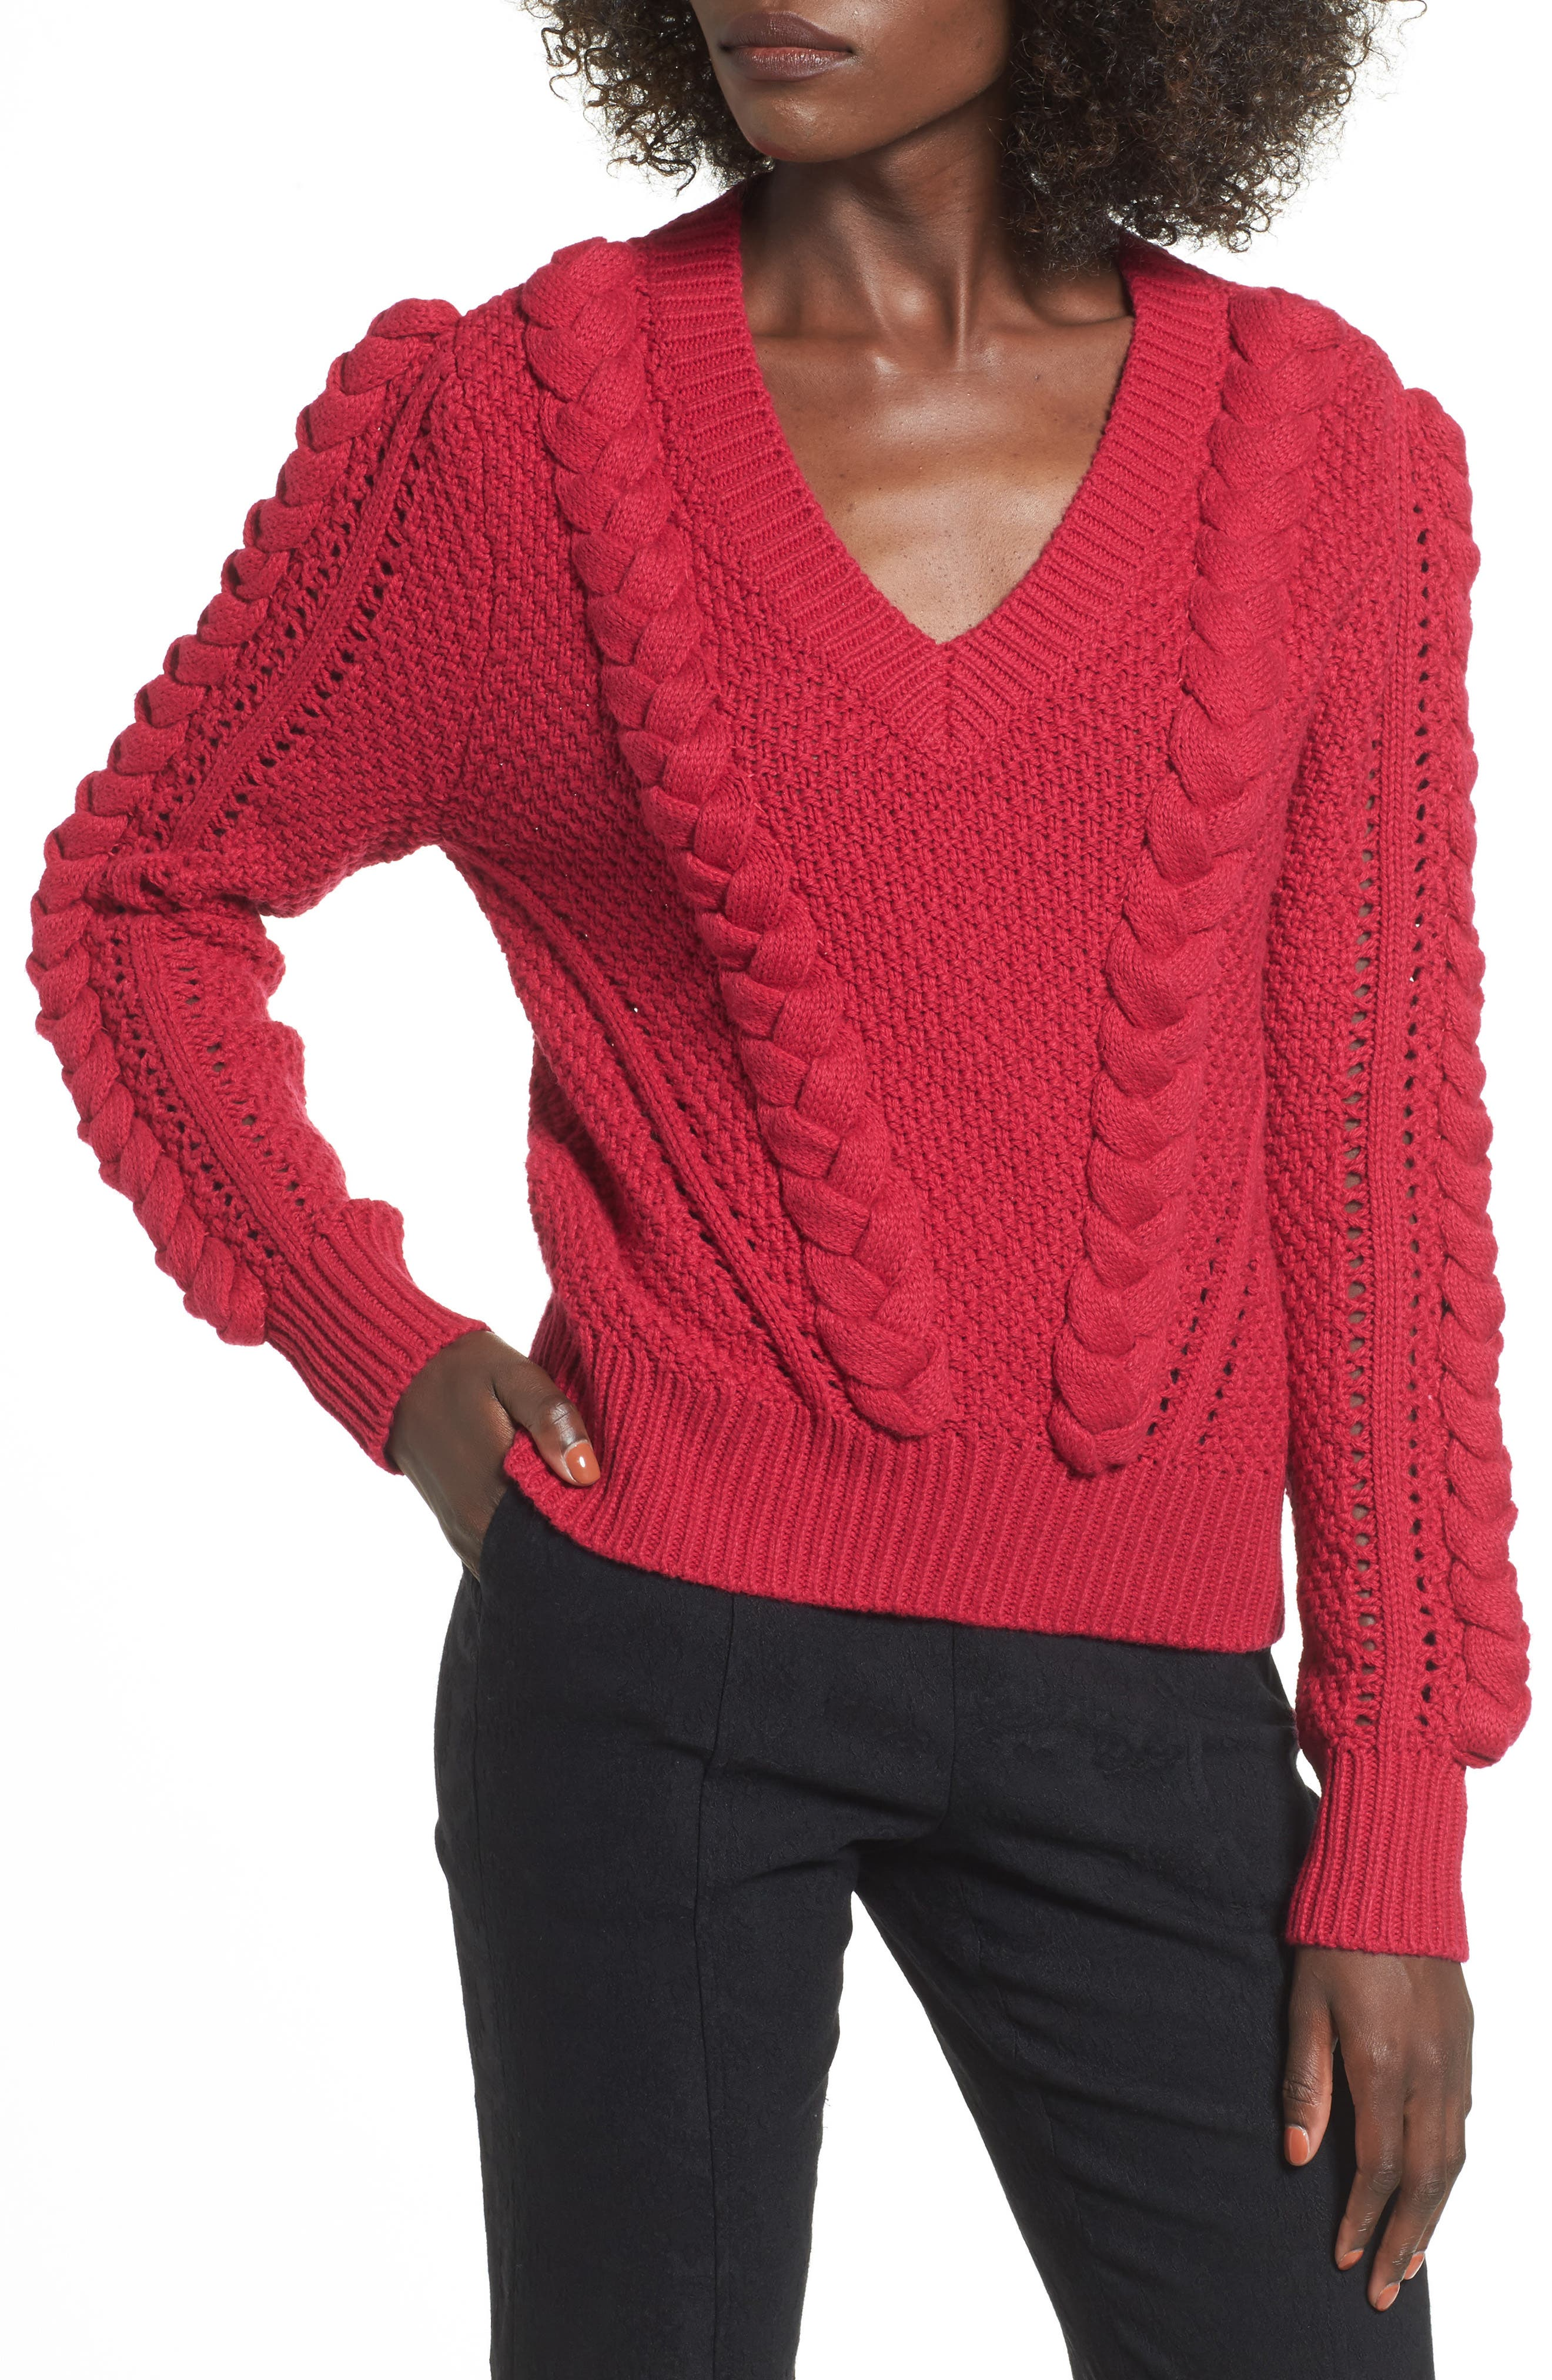 Power Cable Sweater,                         Main,                         color, Red Cerise